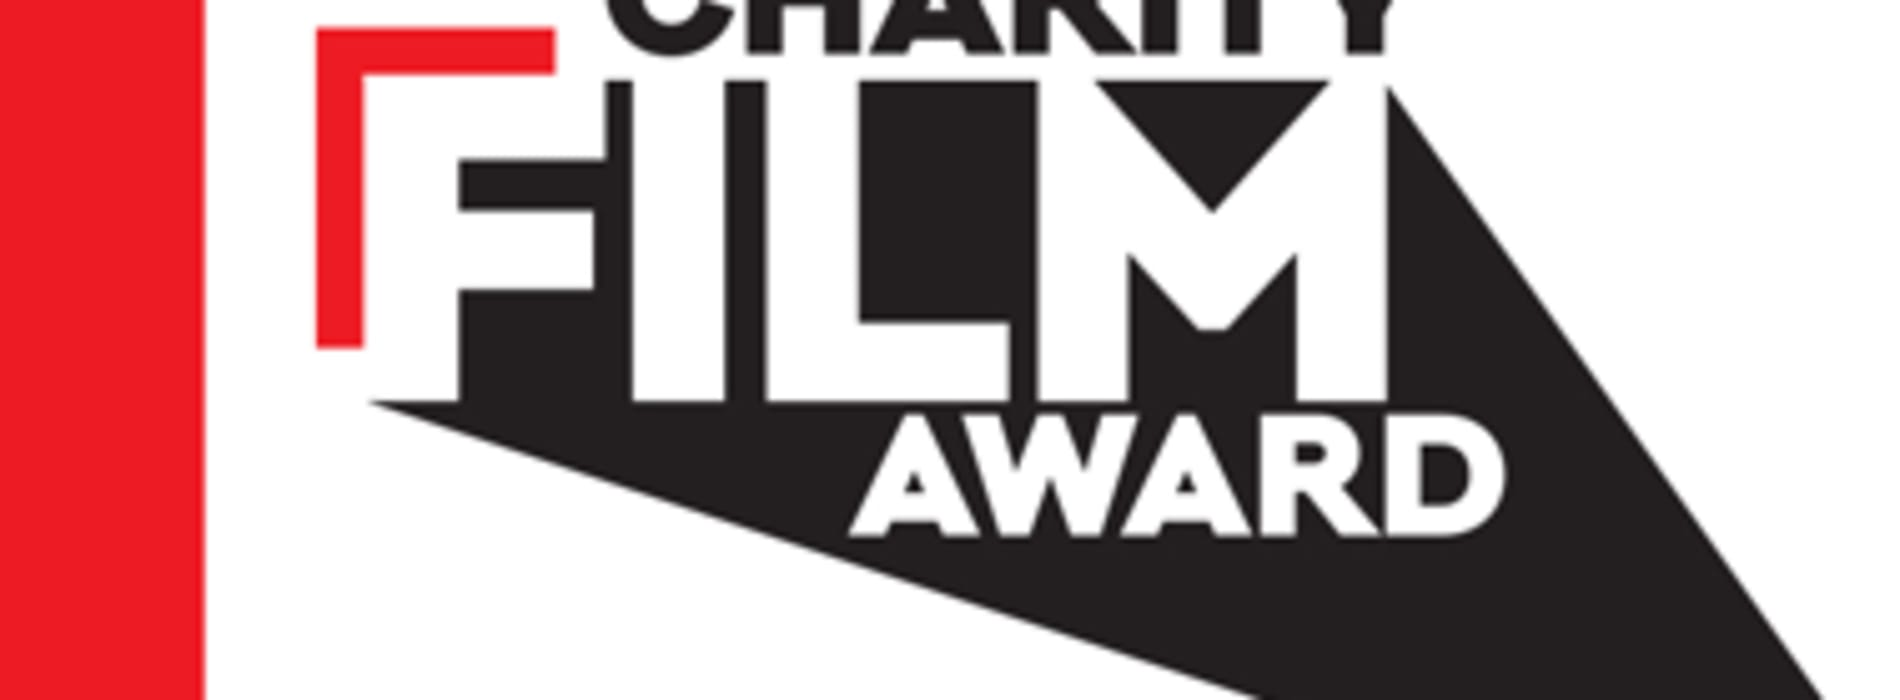 Charity Film Award